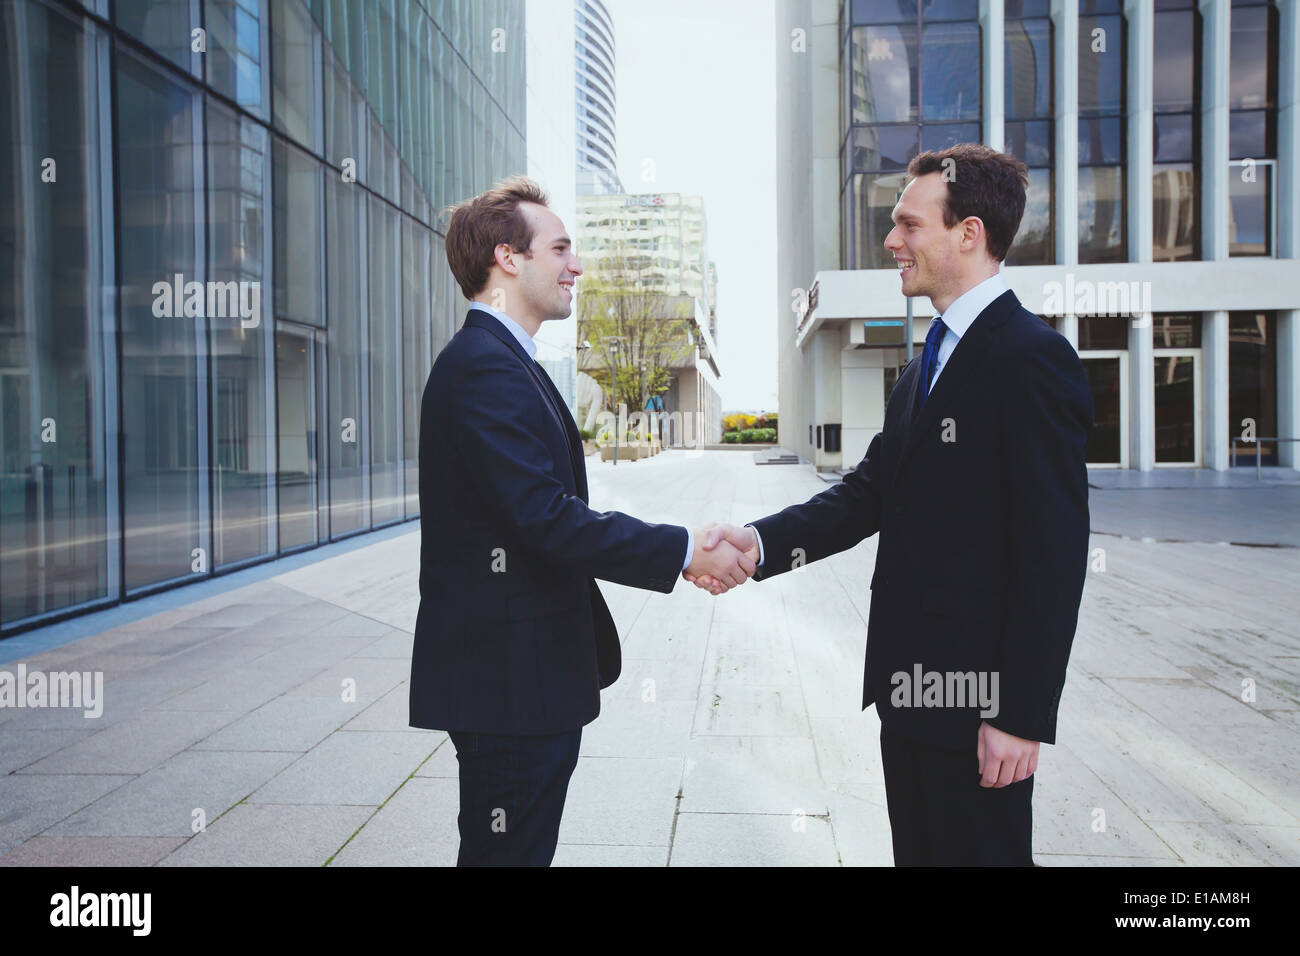 business relations - Stock Image